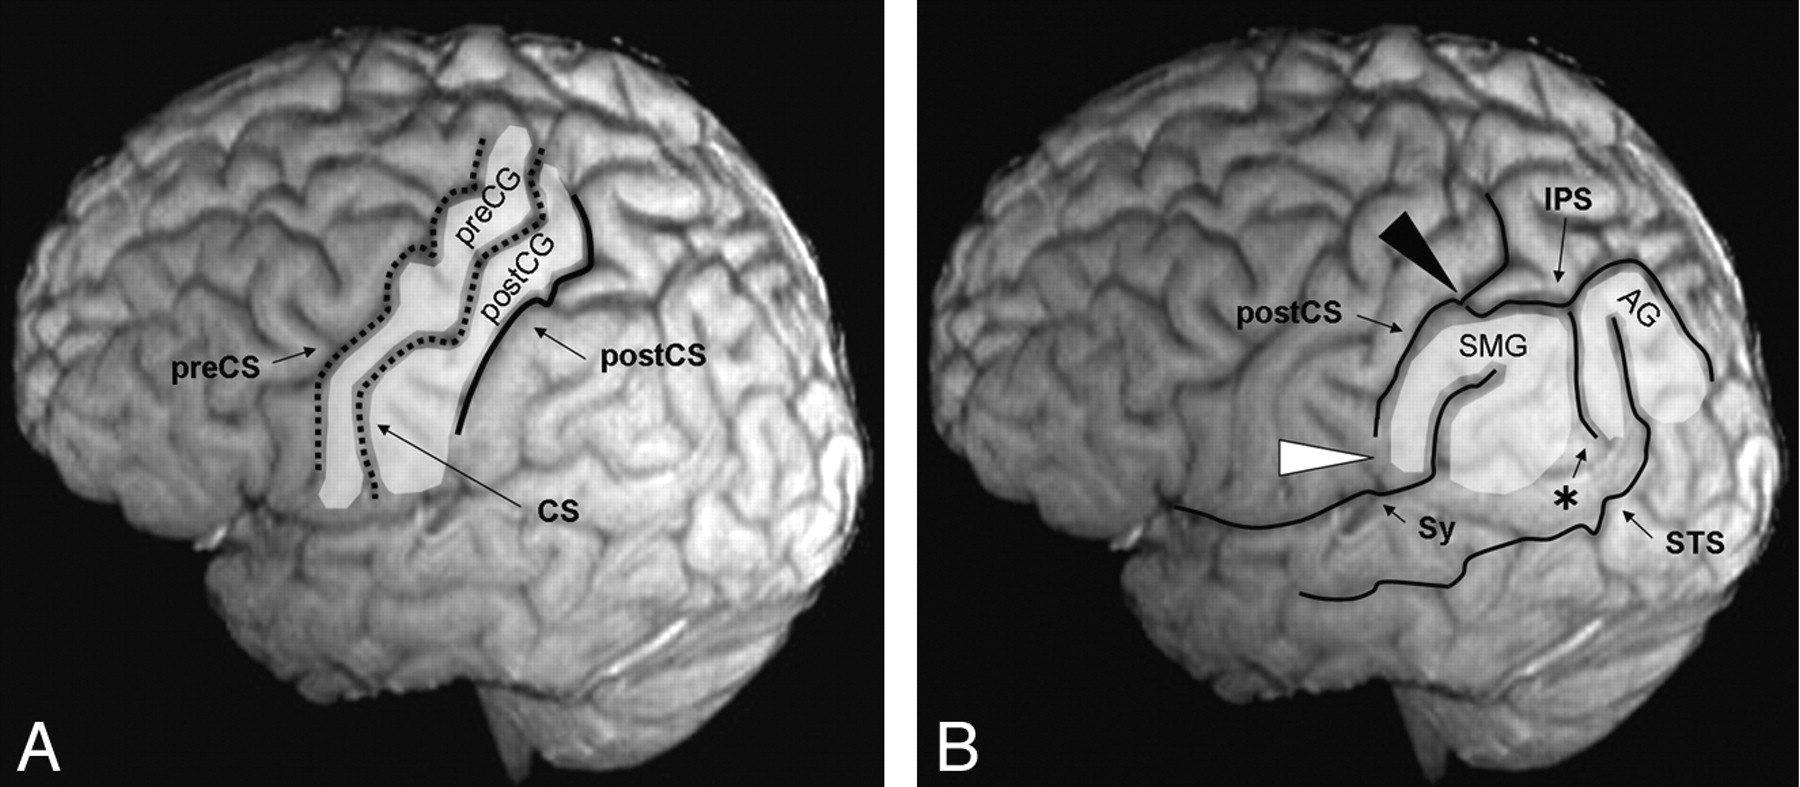 Topographic Analysis Of The Inferior Parietal Lobule In High